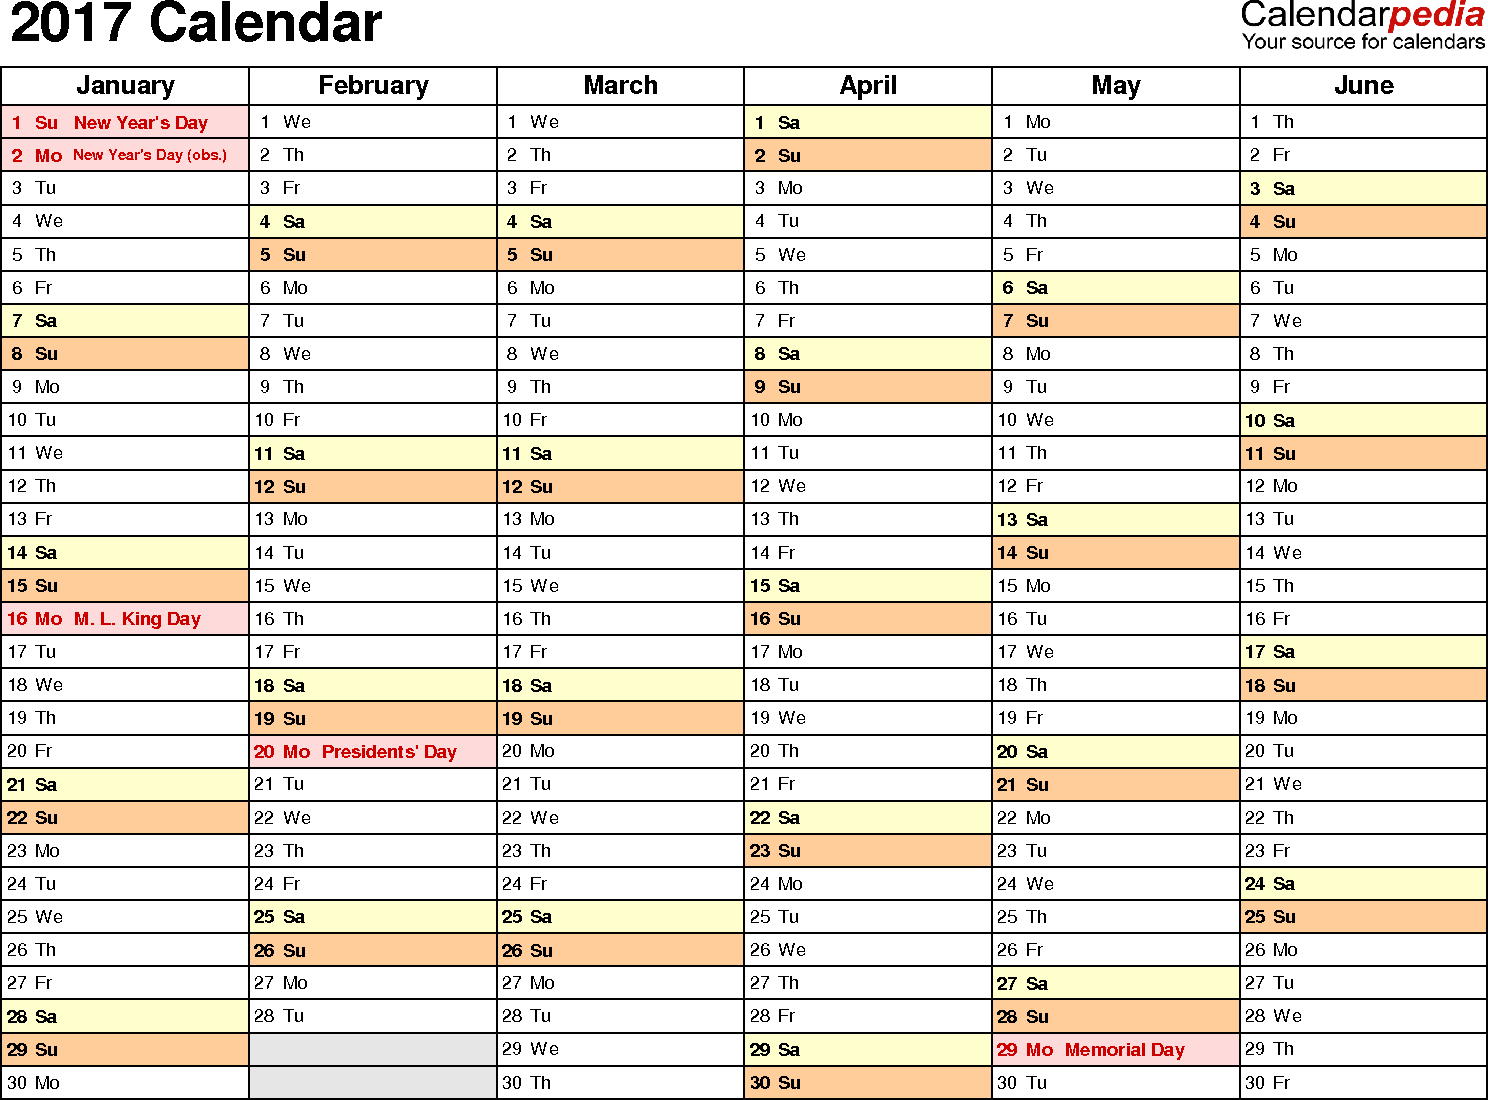 Ediblewildsus  Surprising  Calendar  Download  Free Printable Excel Templates Xls With Luxury Template   Calendar For Excel Months Horizontally  Pages Landscape Orientation With Beauteous Excel Mean Function Also Use Of Vlookup Function In Excel In Addition Microsoft Excel Formulas Cheat Sheet And Search For Number In Excel As Well As Excel Password To Open Additionally Windows  Excel Free Download From Calendarpediacom With Ediblewildsus  Luxury  Calendar  Download  Free Printable Excel Templates Xls With Beauteous Template   Calendar For Excel Months Horizontally  Pages Landscape Orientation And Surprising Excel Mean Function Also Use Of Vlookup Function In Excel In Addition Microsoft Excel Formulas Cheat Sheet From Calendarpediacom